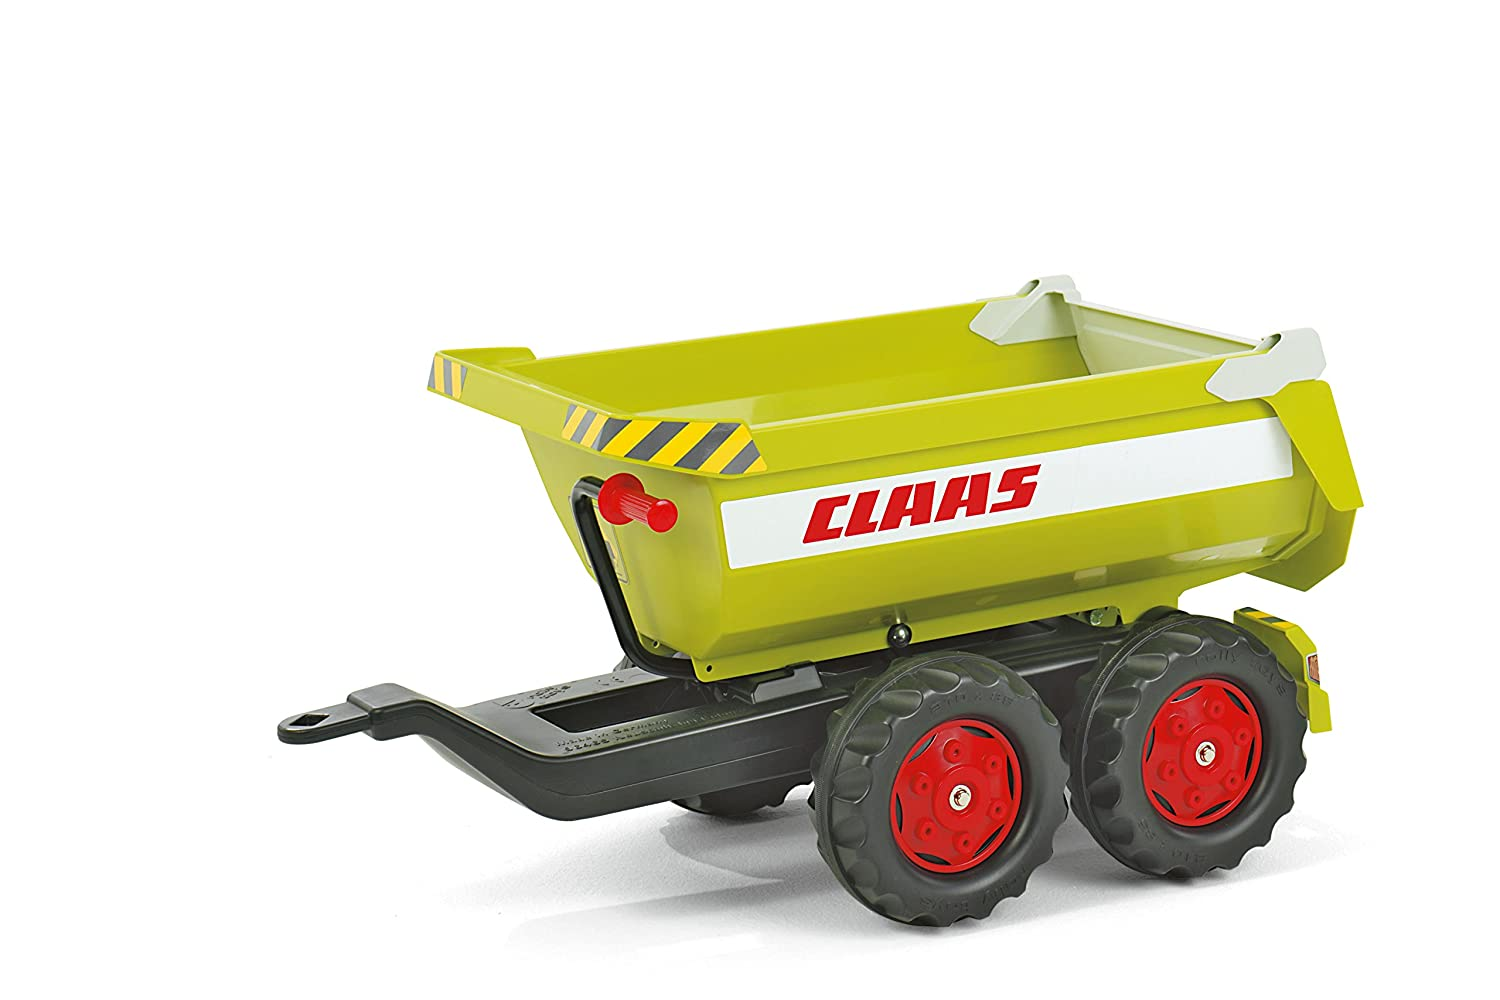 Rolly Toys Claas Arion 640 - Rolly Toys rollyHalfpipe Claas